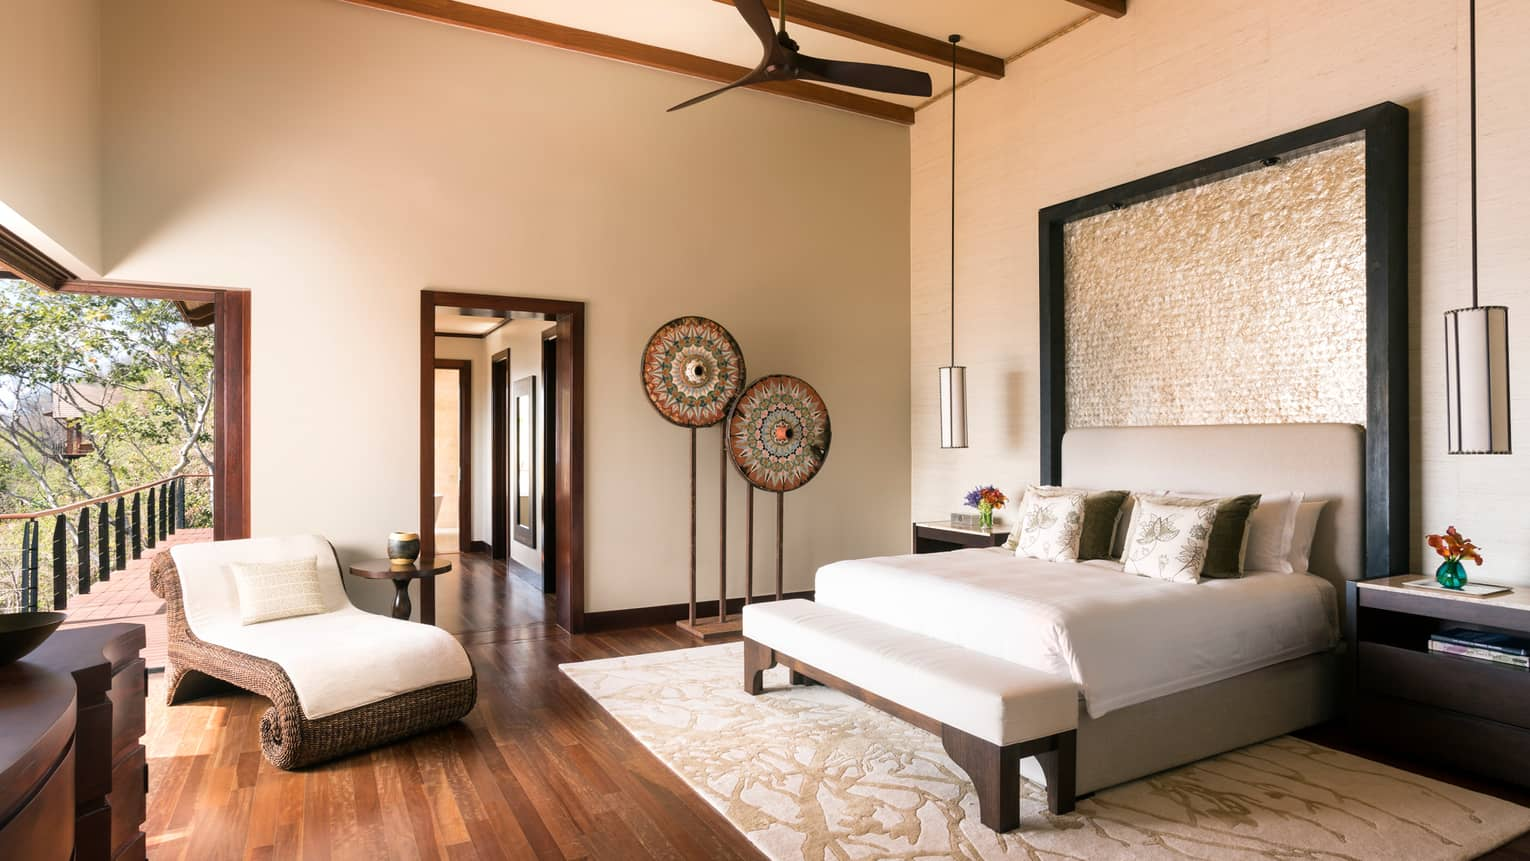 Casa del Cielo Residence Estate sunny bedroom with bed, wicker bench and lounge chair, tall ceilings